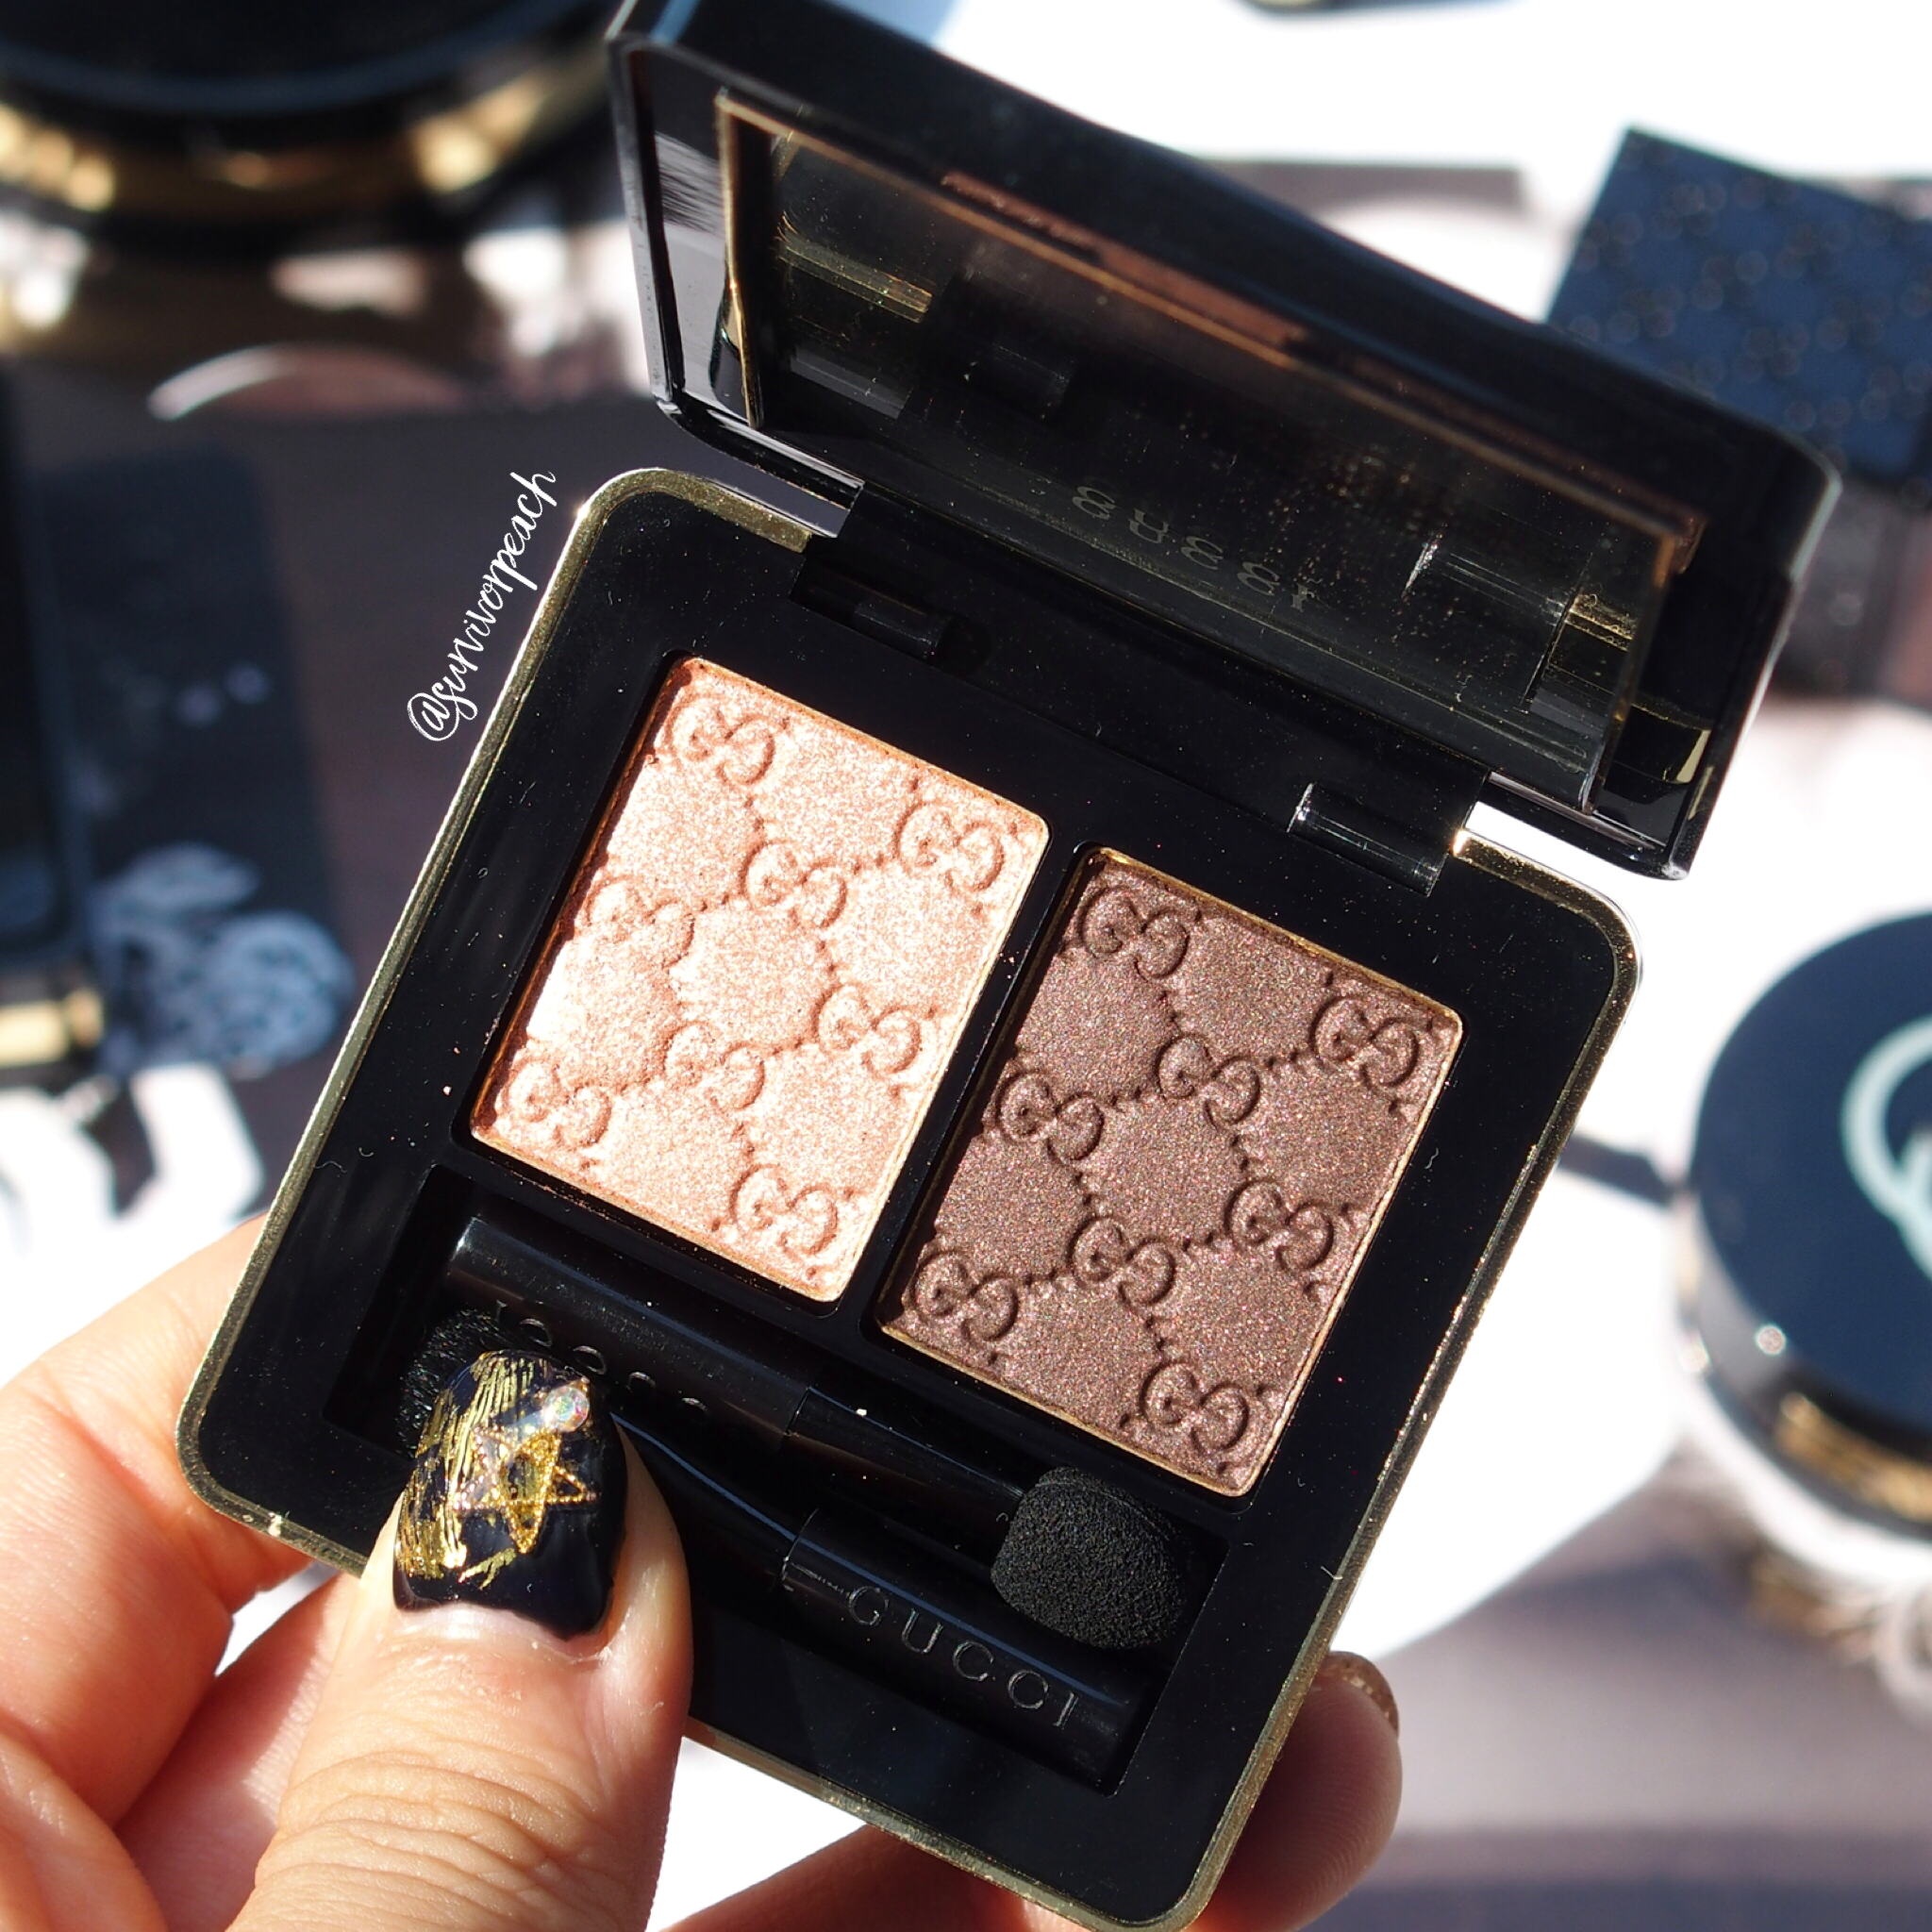 Gucci Amaretto Magnetic Color Shadow Duo (in sunlight)